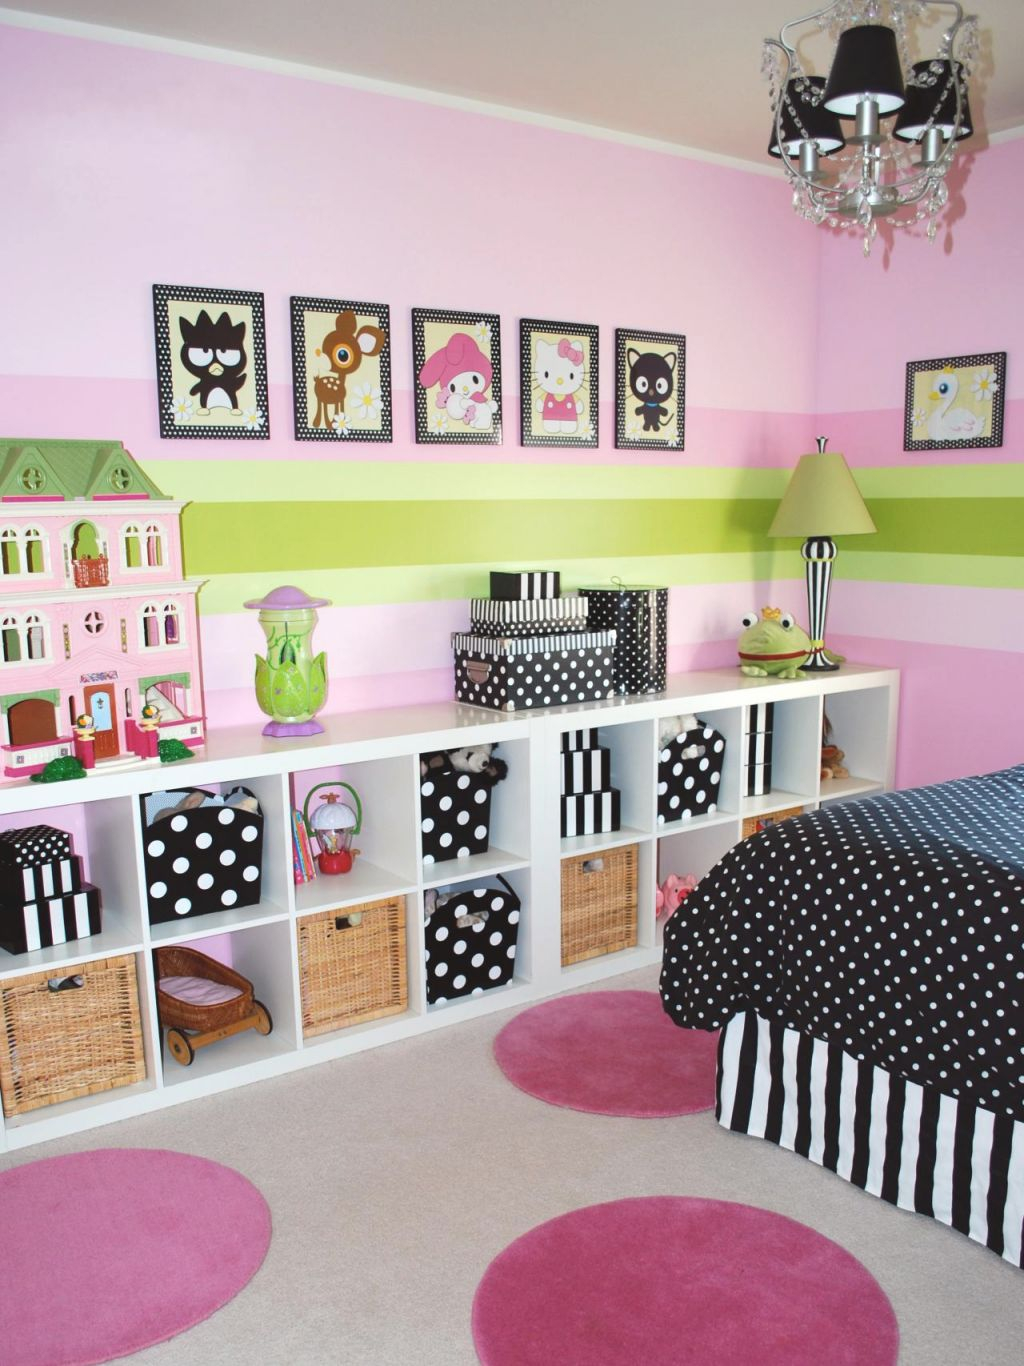 10 Decorating Ideas For Kids' Rooms | Hgtv intended for Best of Decoration Ideas For Little Girl Bedrooms